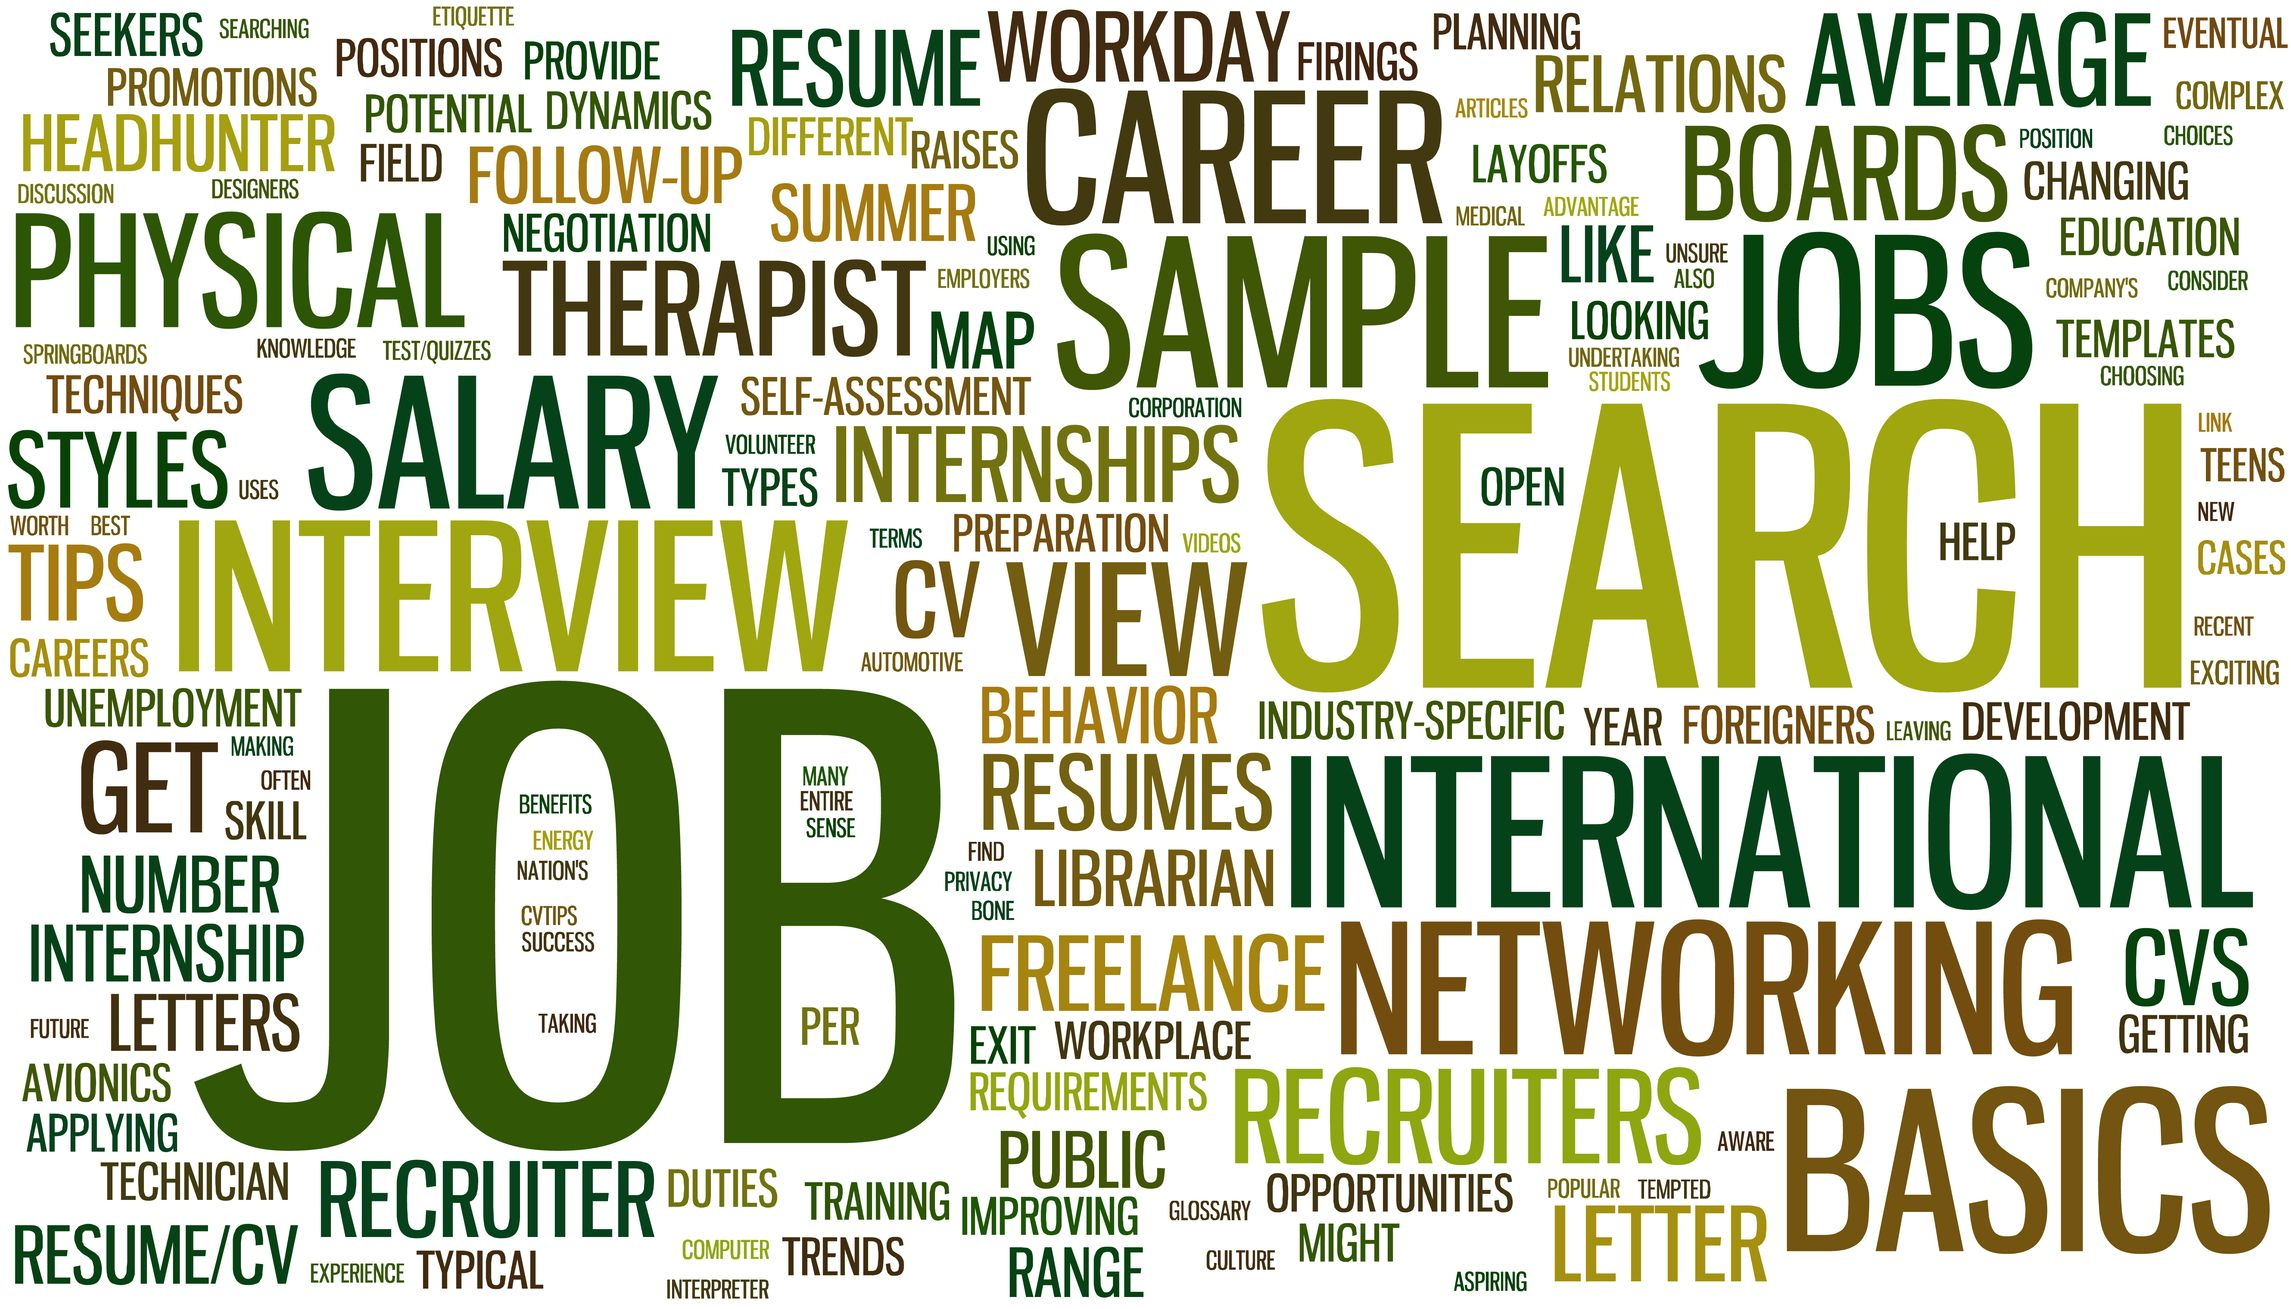 How To Make The Most Of Job Boards With Images